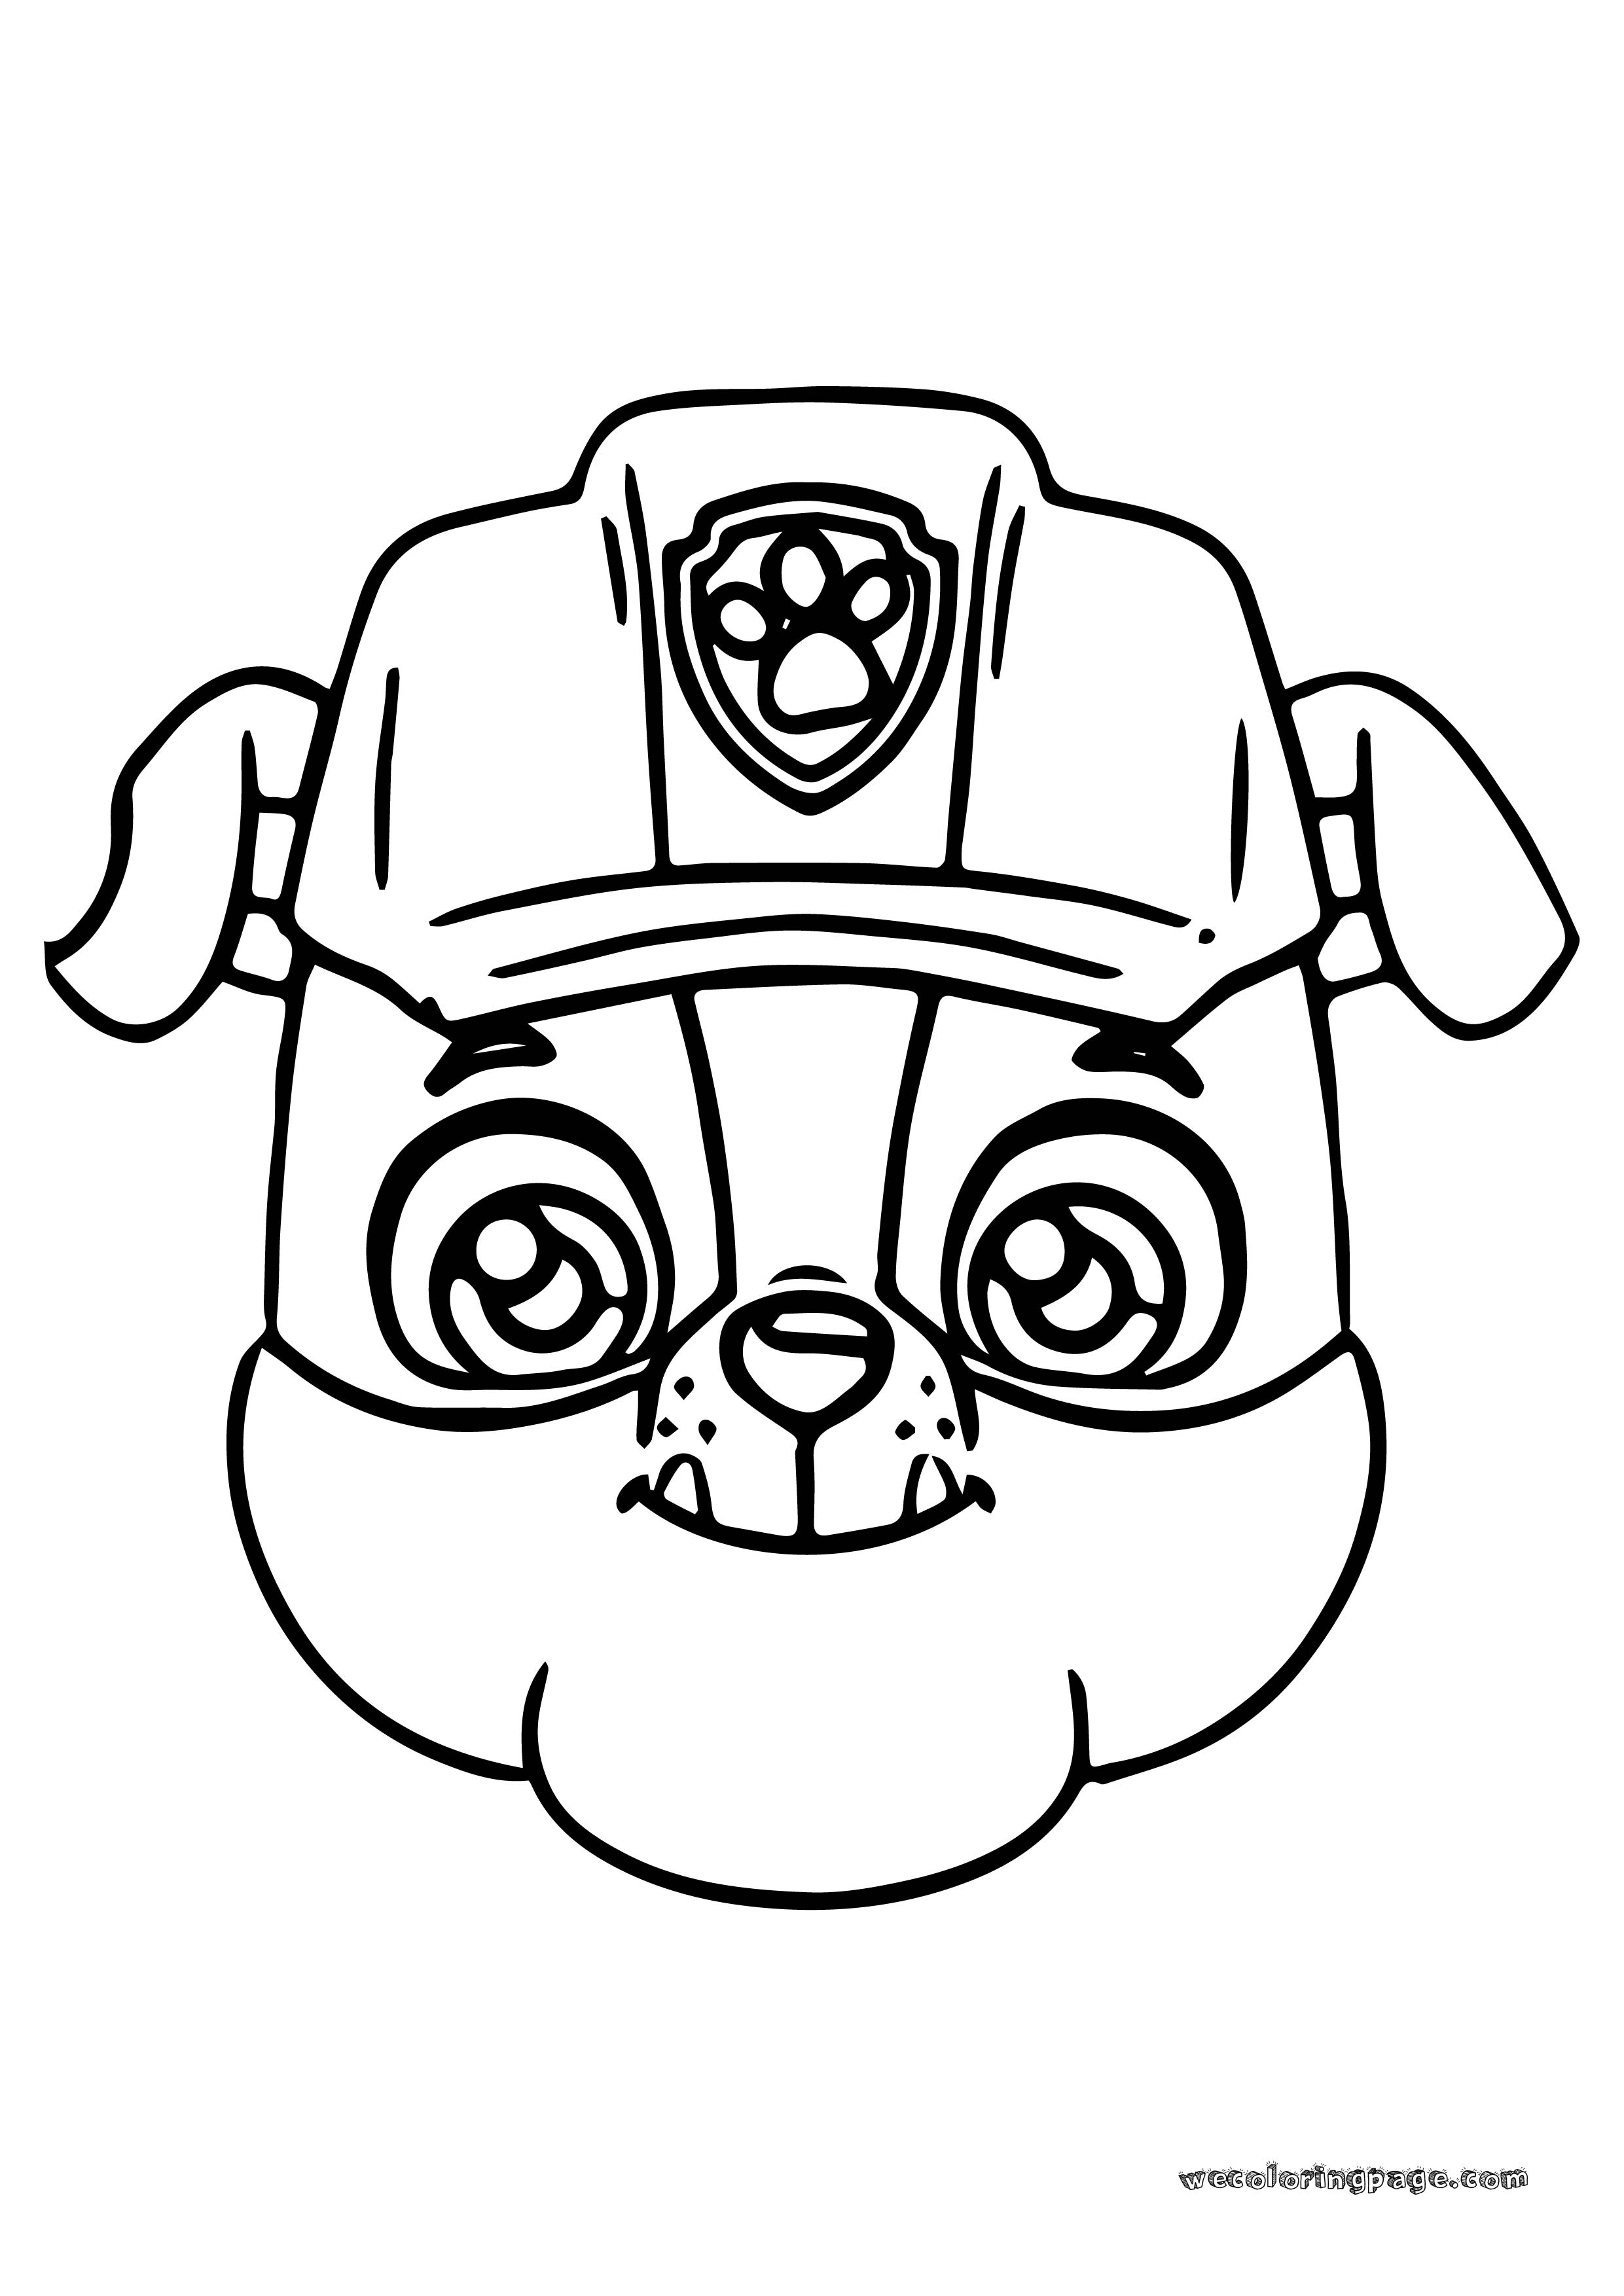 Paw Patrol Rubble Face Coloring